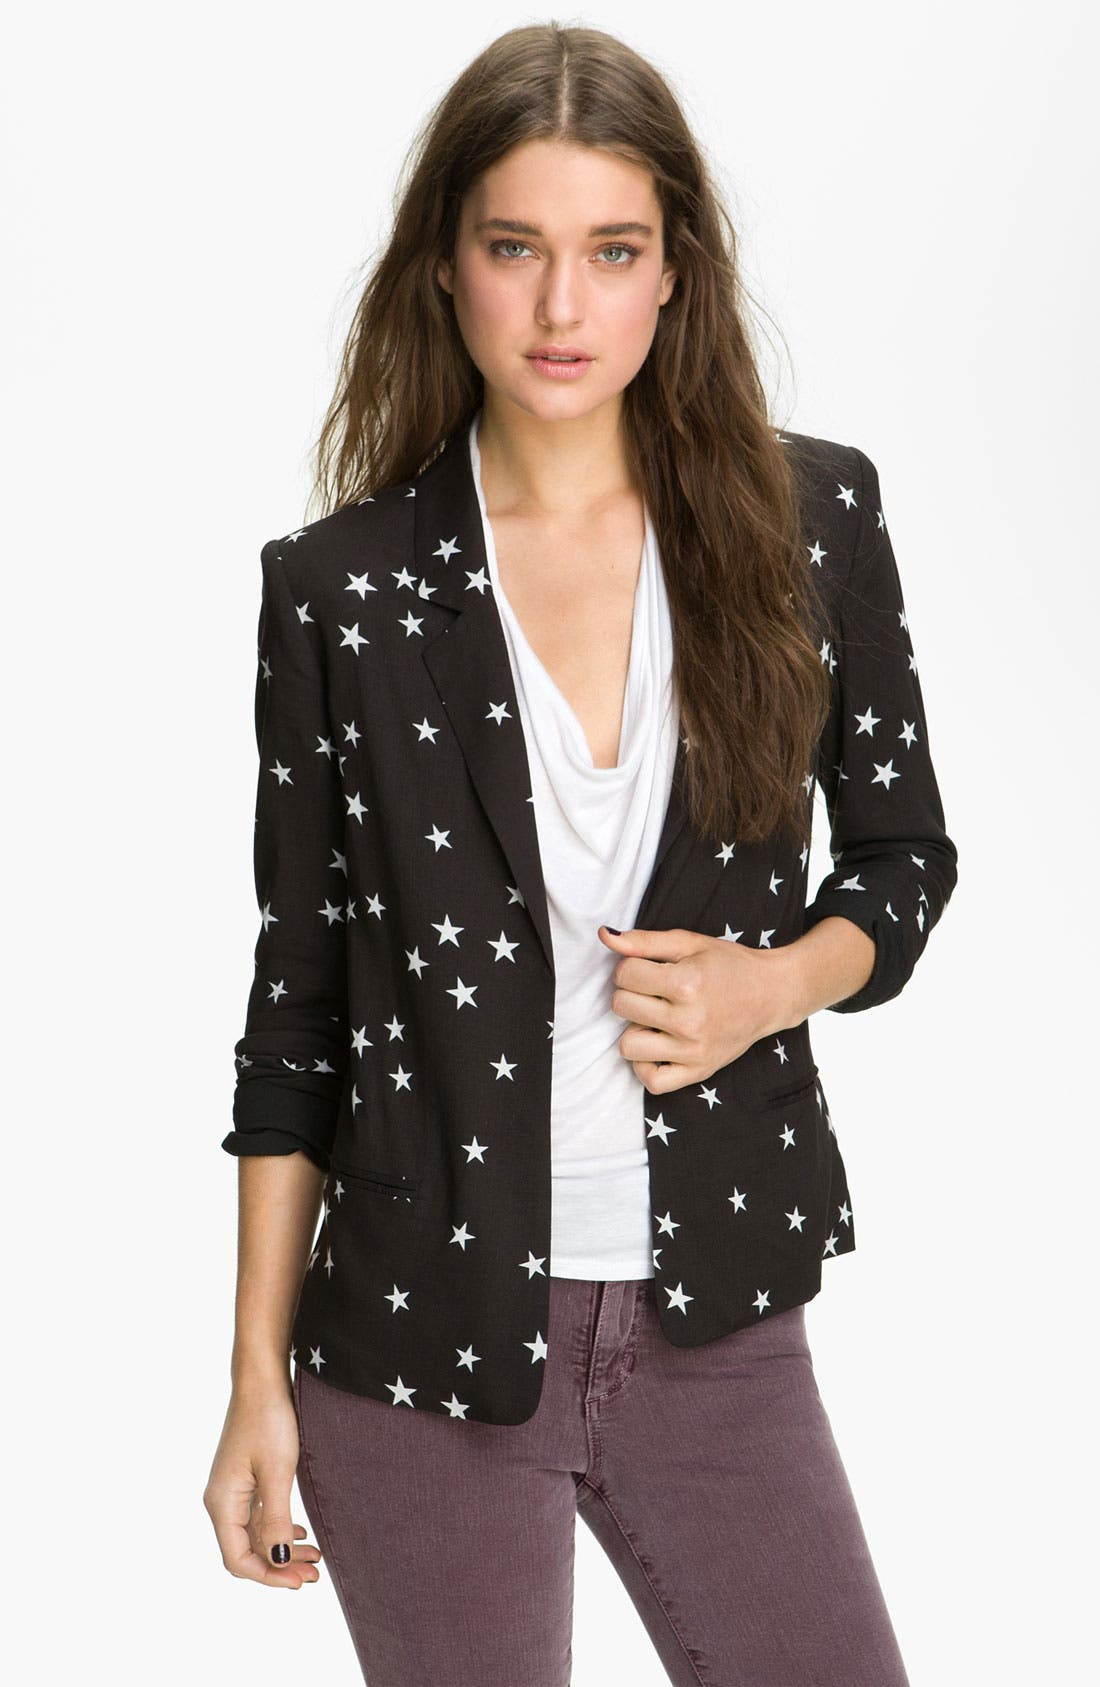 Alternate Image 1 Selected - Patterson J. Kincaid 'Ricci' Print Blazer